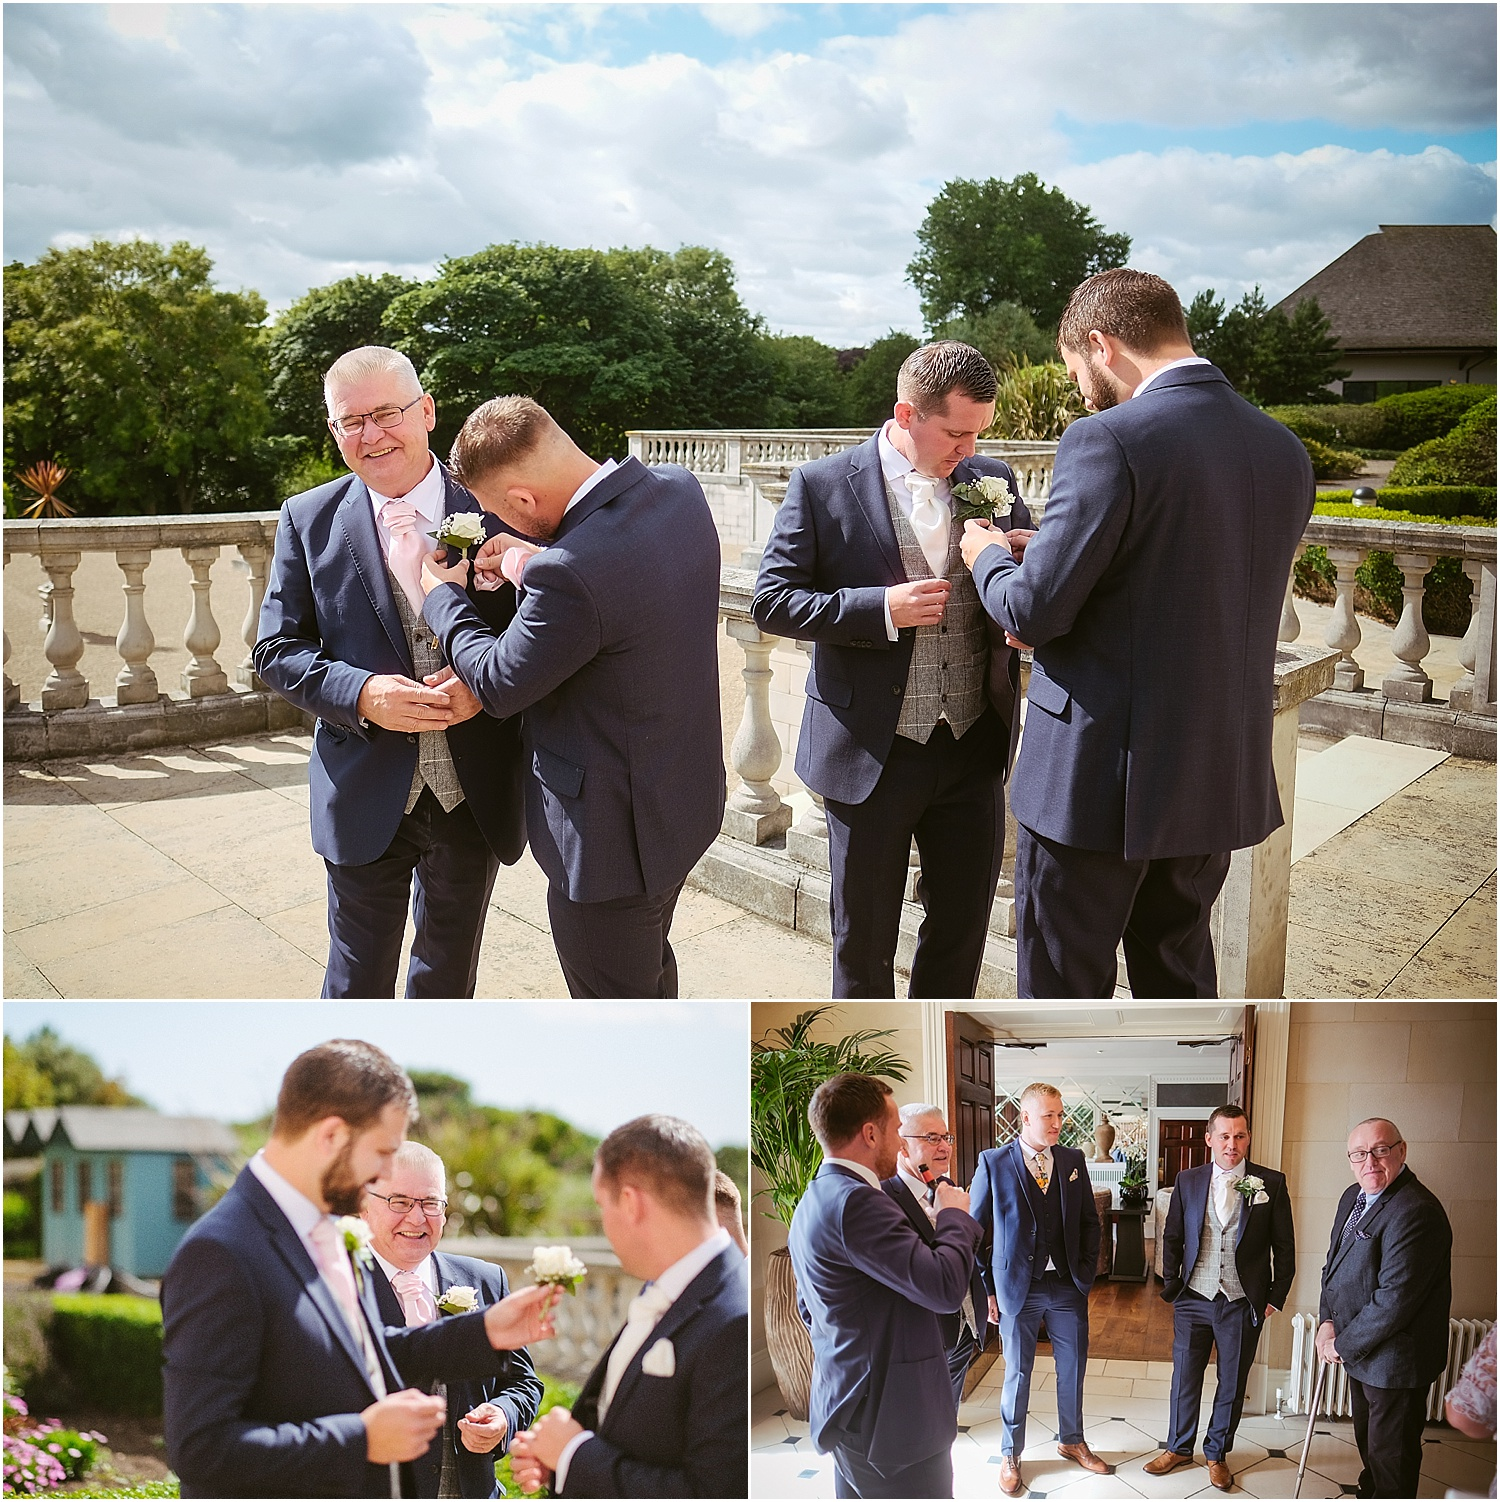 Wedding at Seaham Hall - wedding photography by www.2tonephotography.co.uk 024.jpg